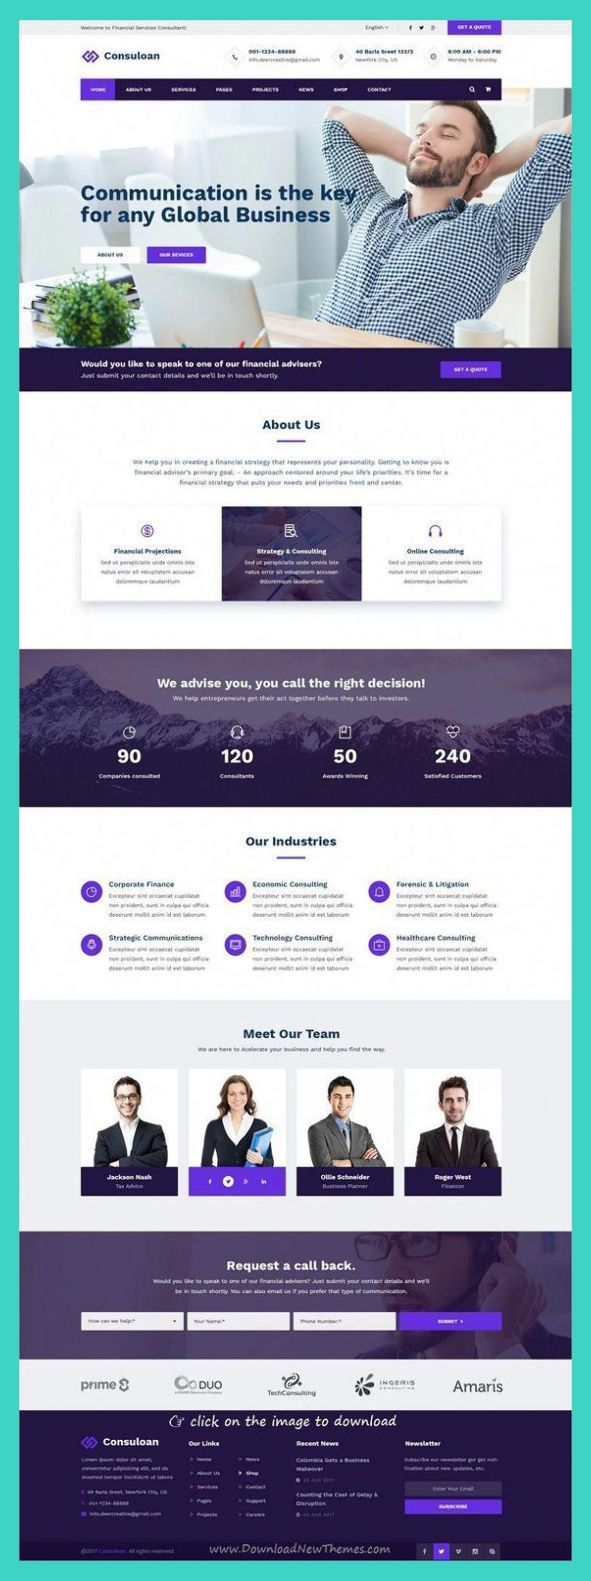 Web Design Ideas This Is Our Daily Website Design Inspiration Article For Our Loyal Reader In 2020 Website Design Web Design Tips Web Design